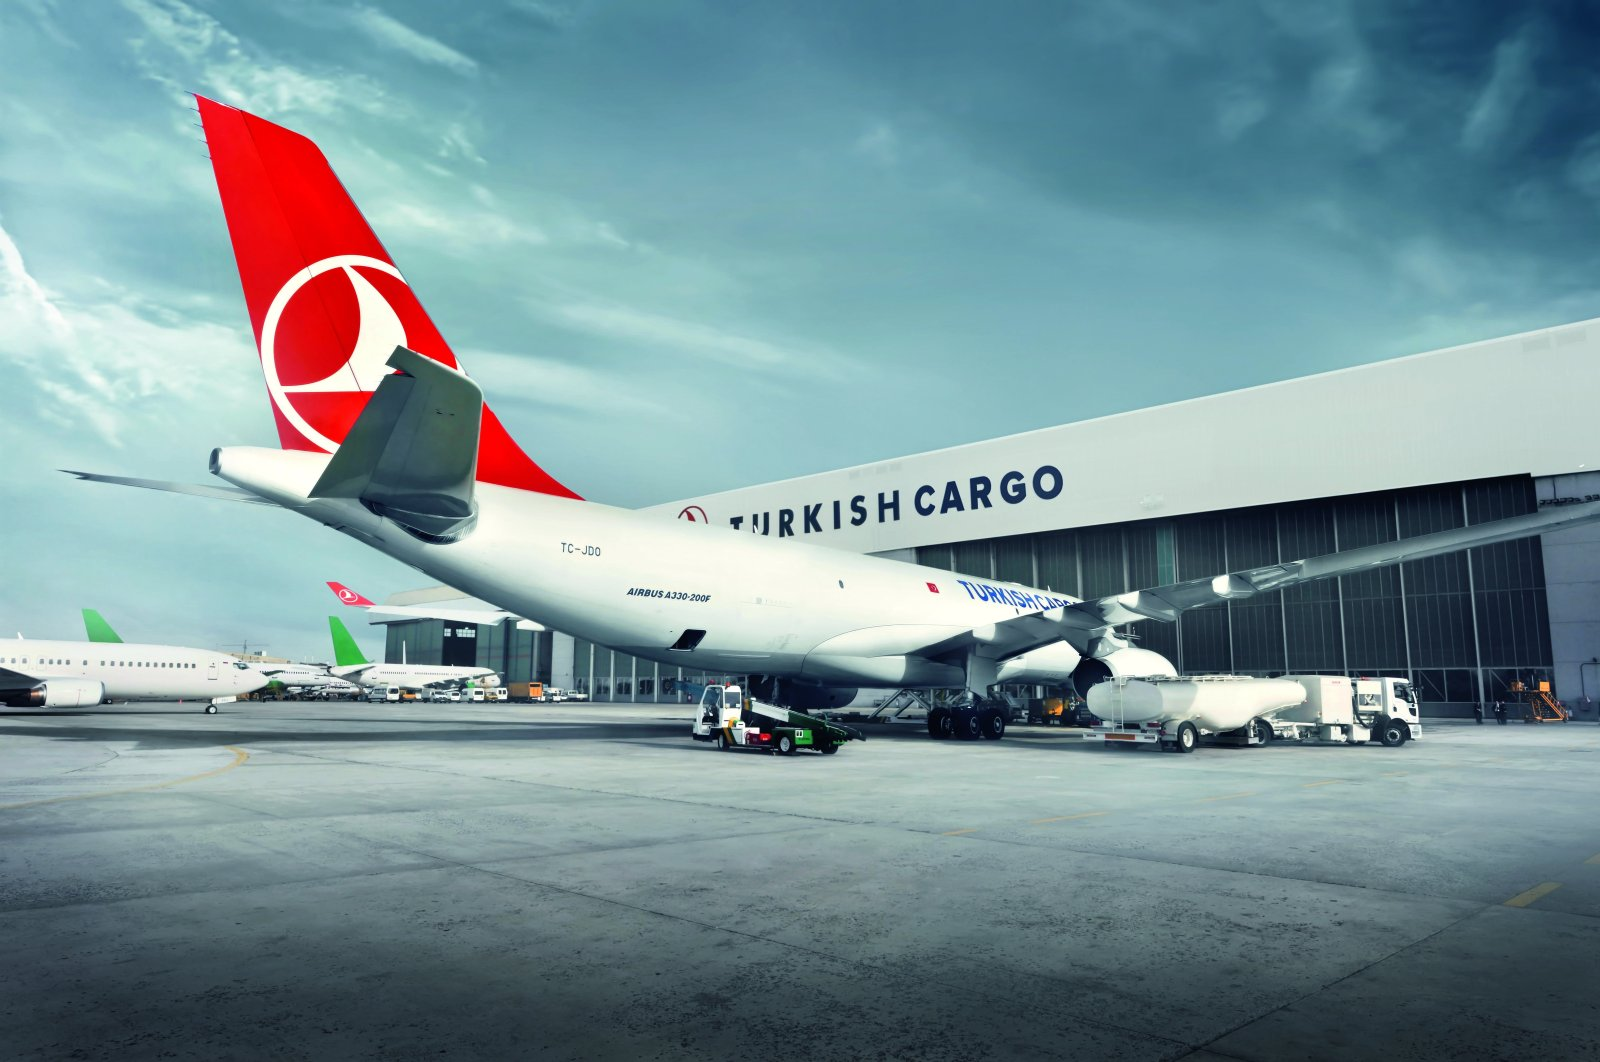 A cargo aircraft of Turkish Cargo, a brand of Turkish Airlines (THY), is pictured at the now-closed Atatürk Airport, Istanbul, Turkey, Oct. 31, 2017. (AA Photo)